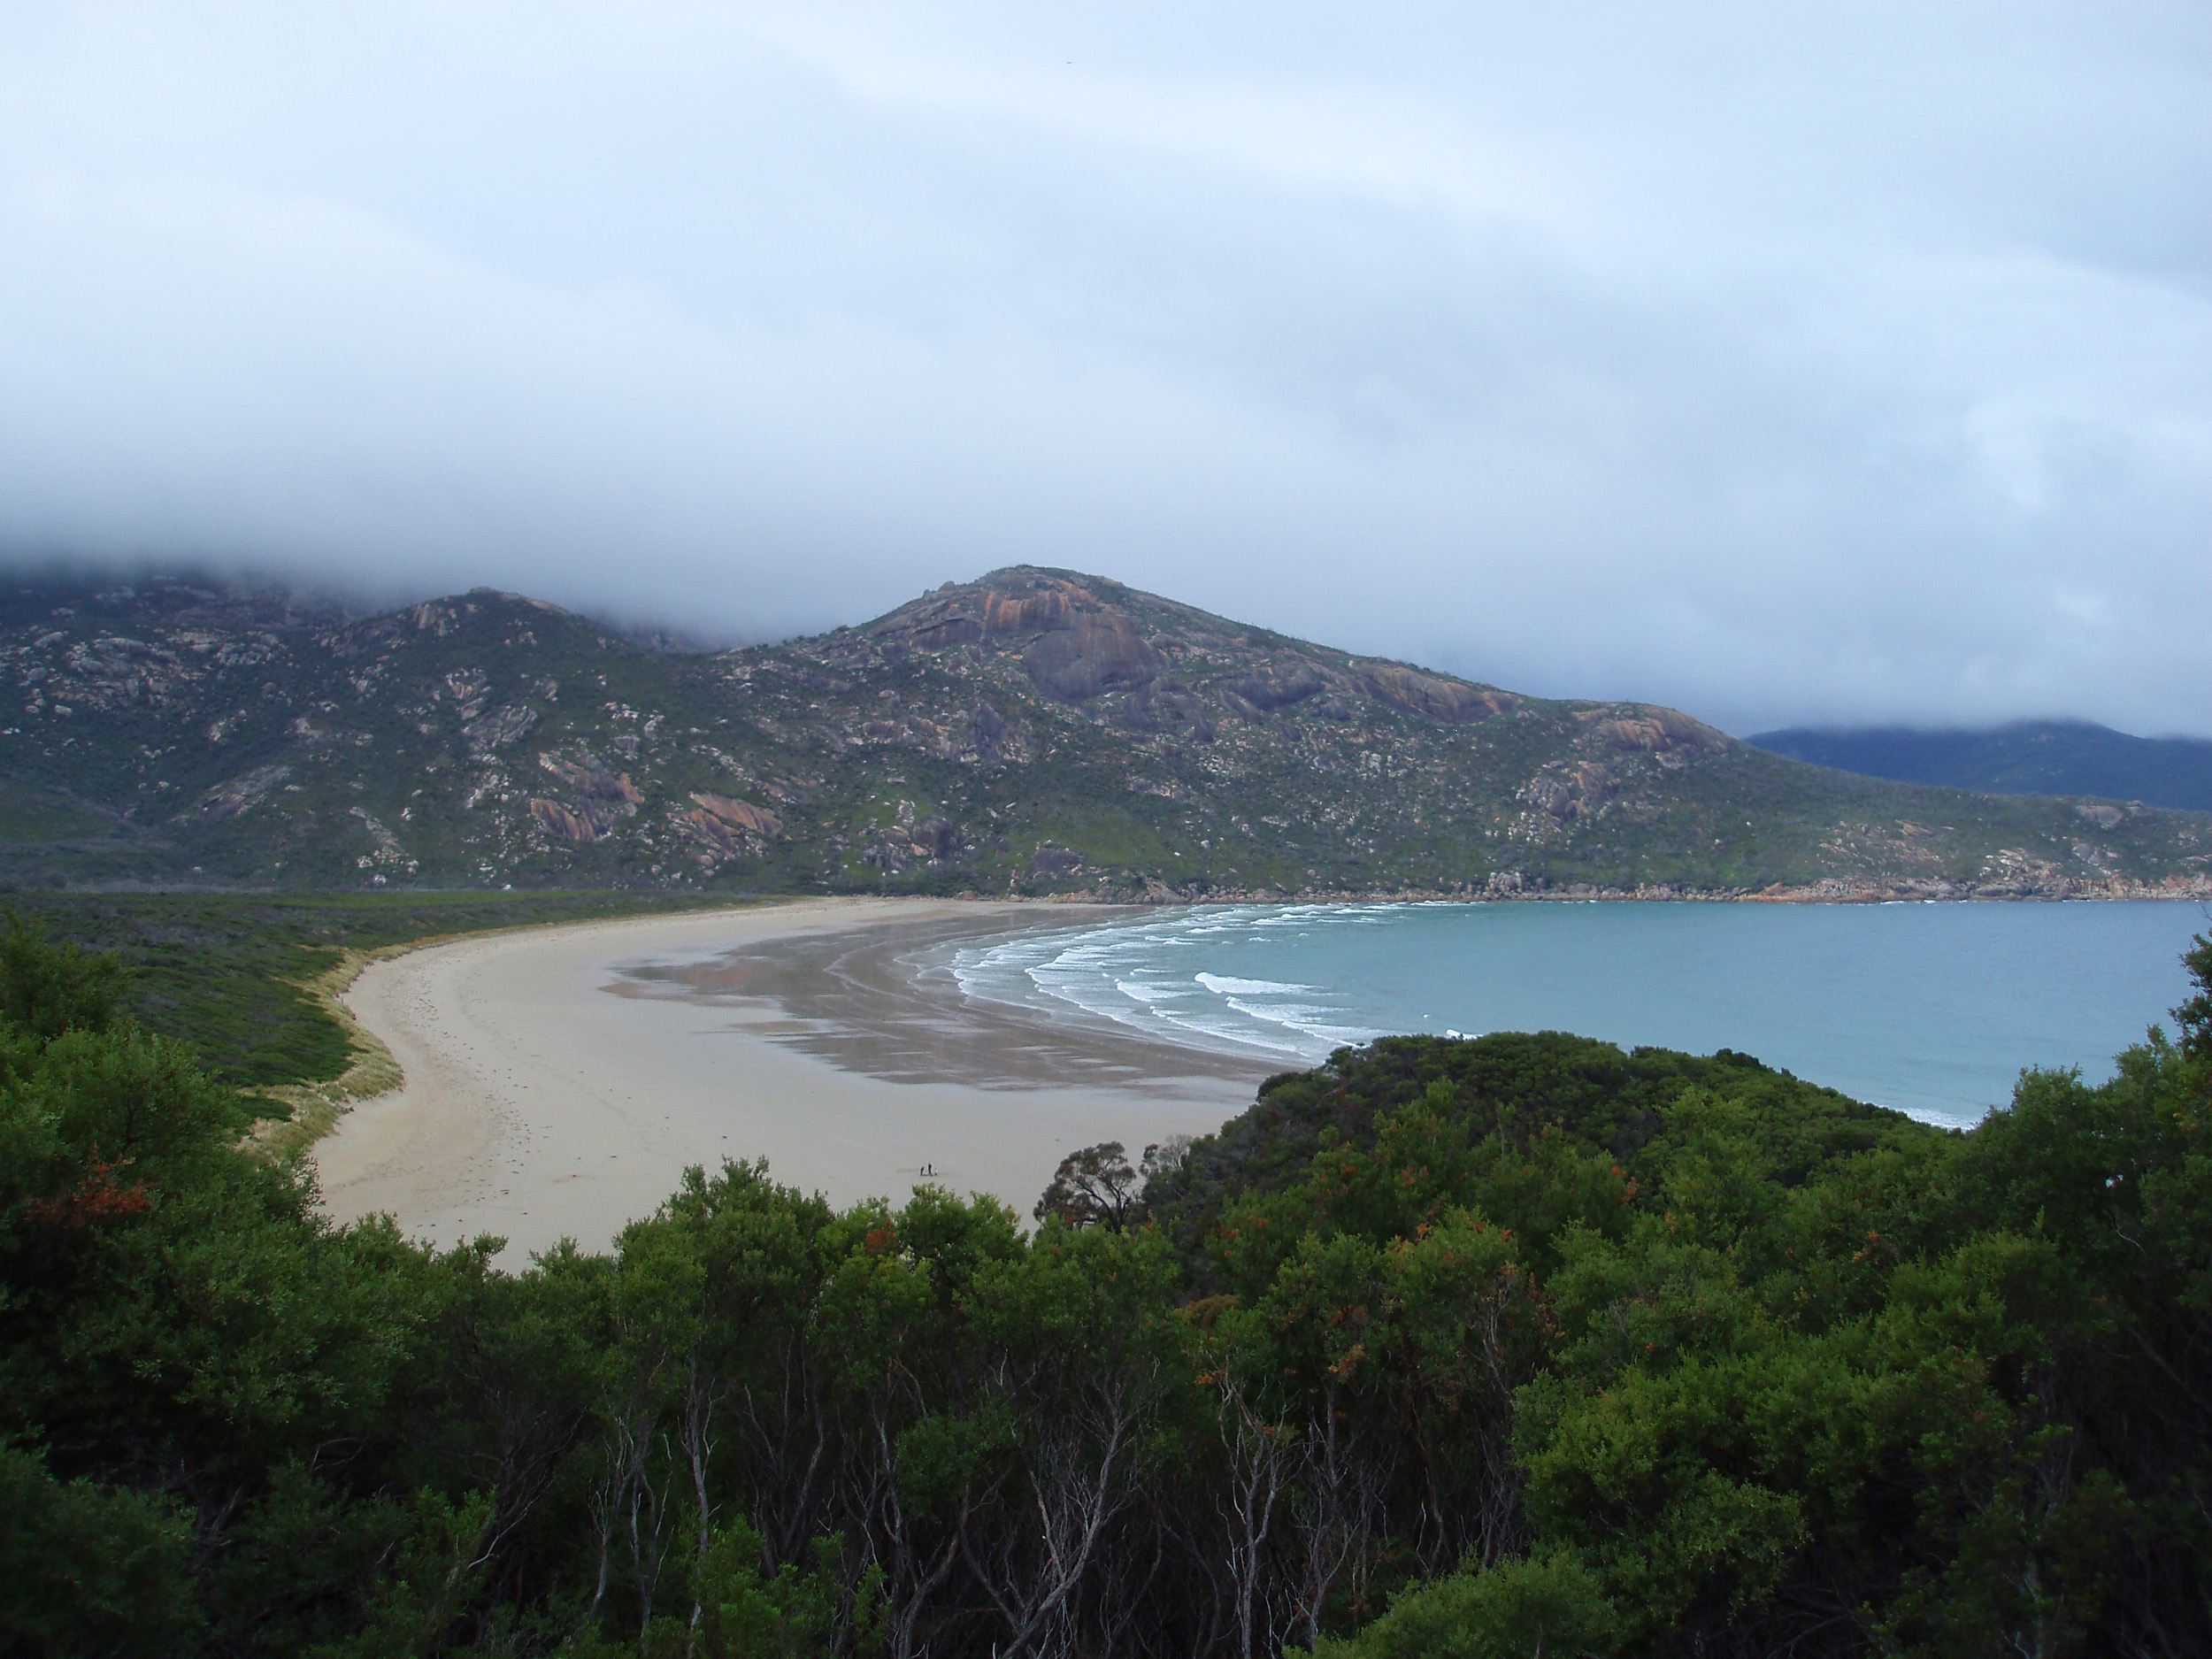 view of norman beach - norman bay, wilsons promontory